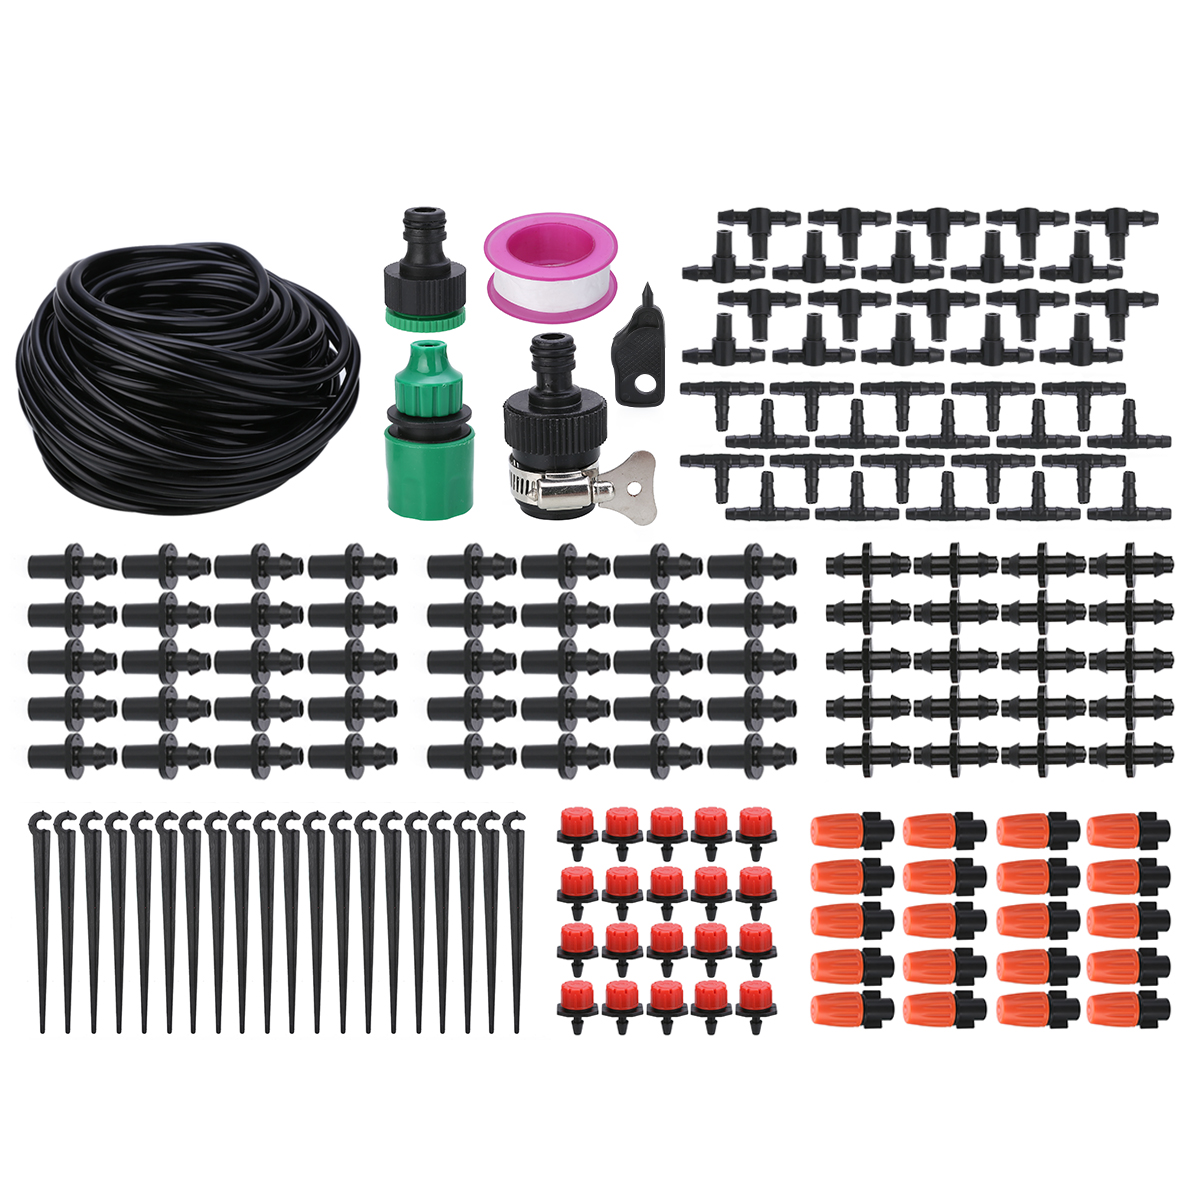 Mayitr 15m Automatic Watering Irrigation DIY Drip System Kit Outdoor Garden Dripper Irrigation Watering Kits in Watering Kits from Home Garden